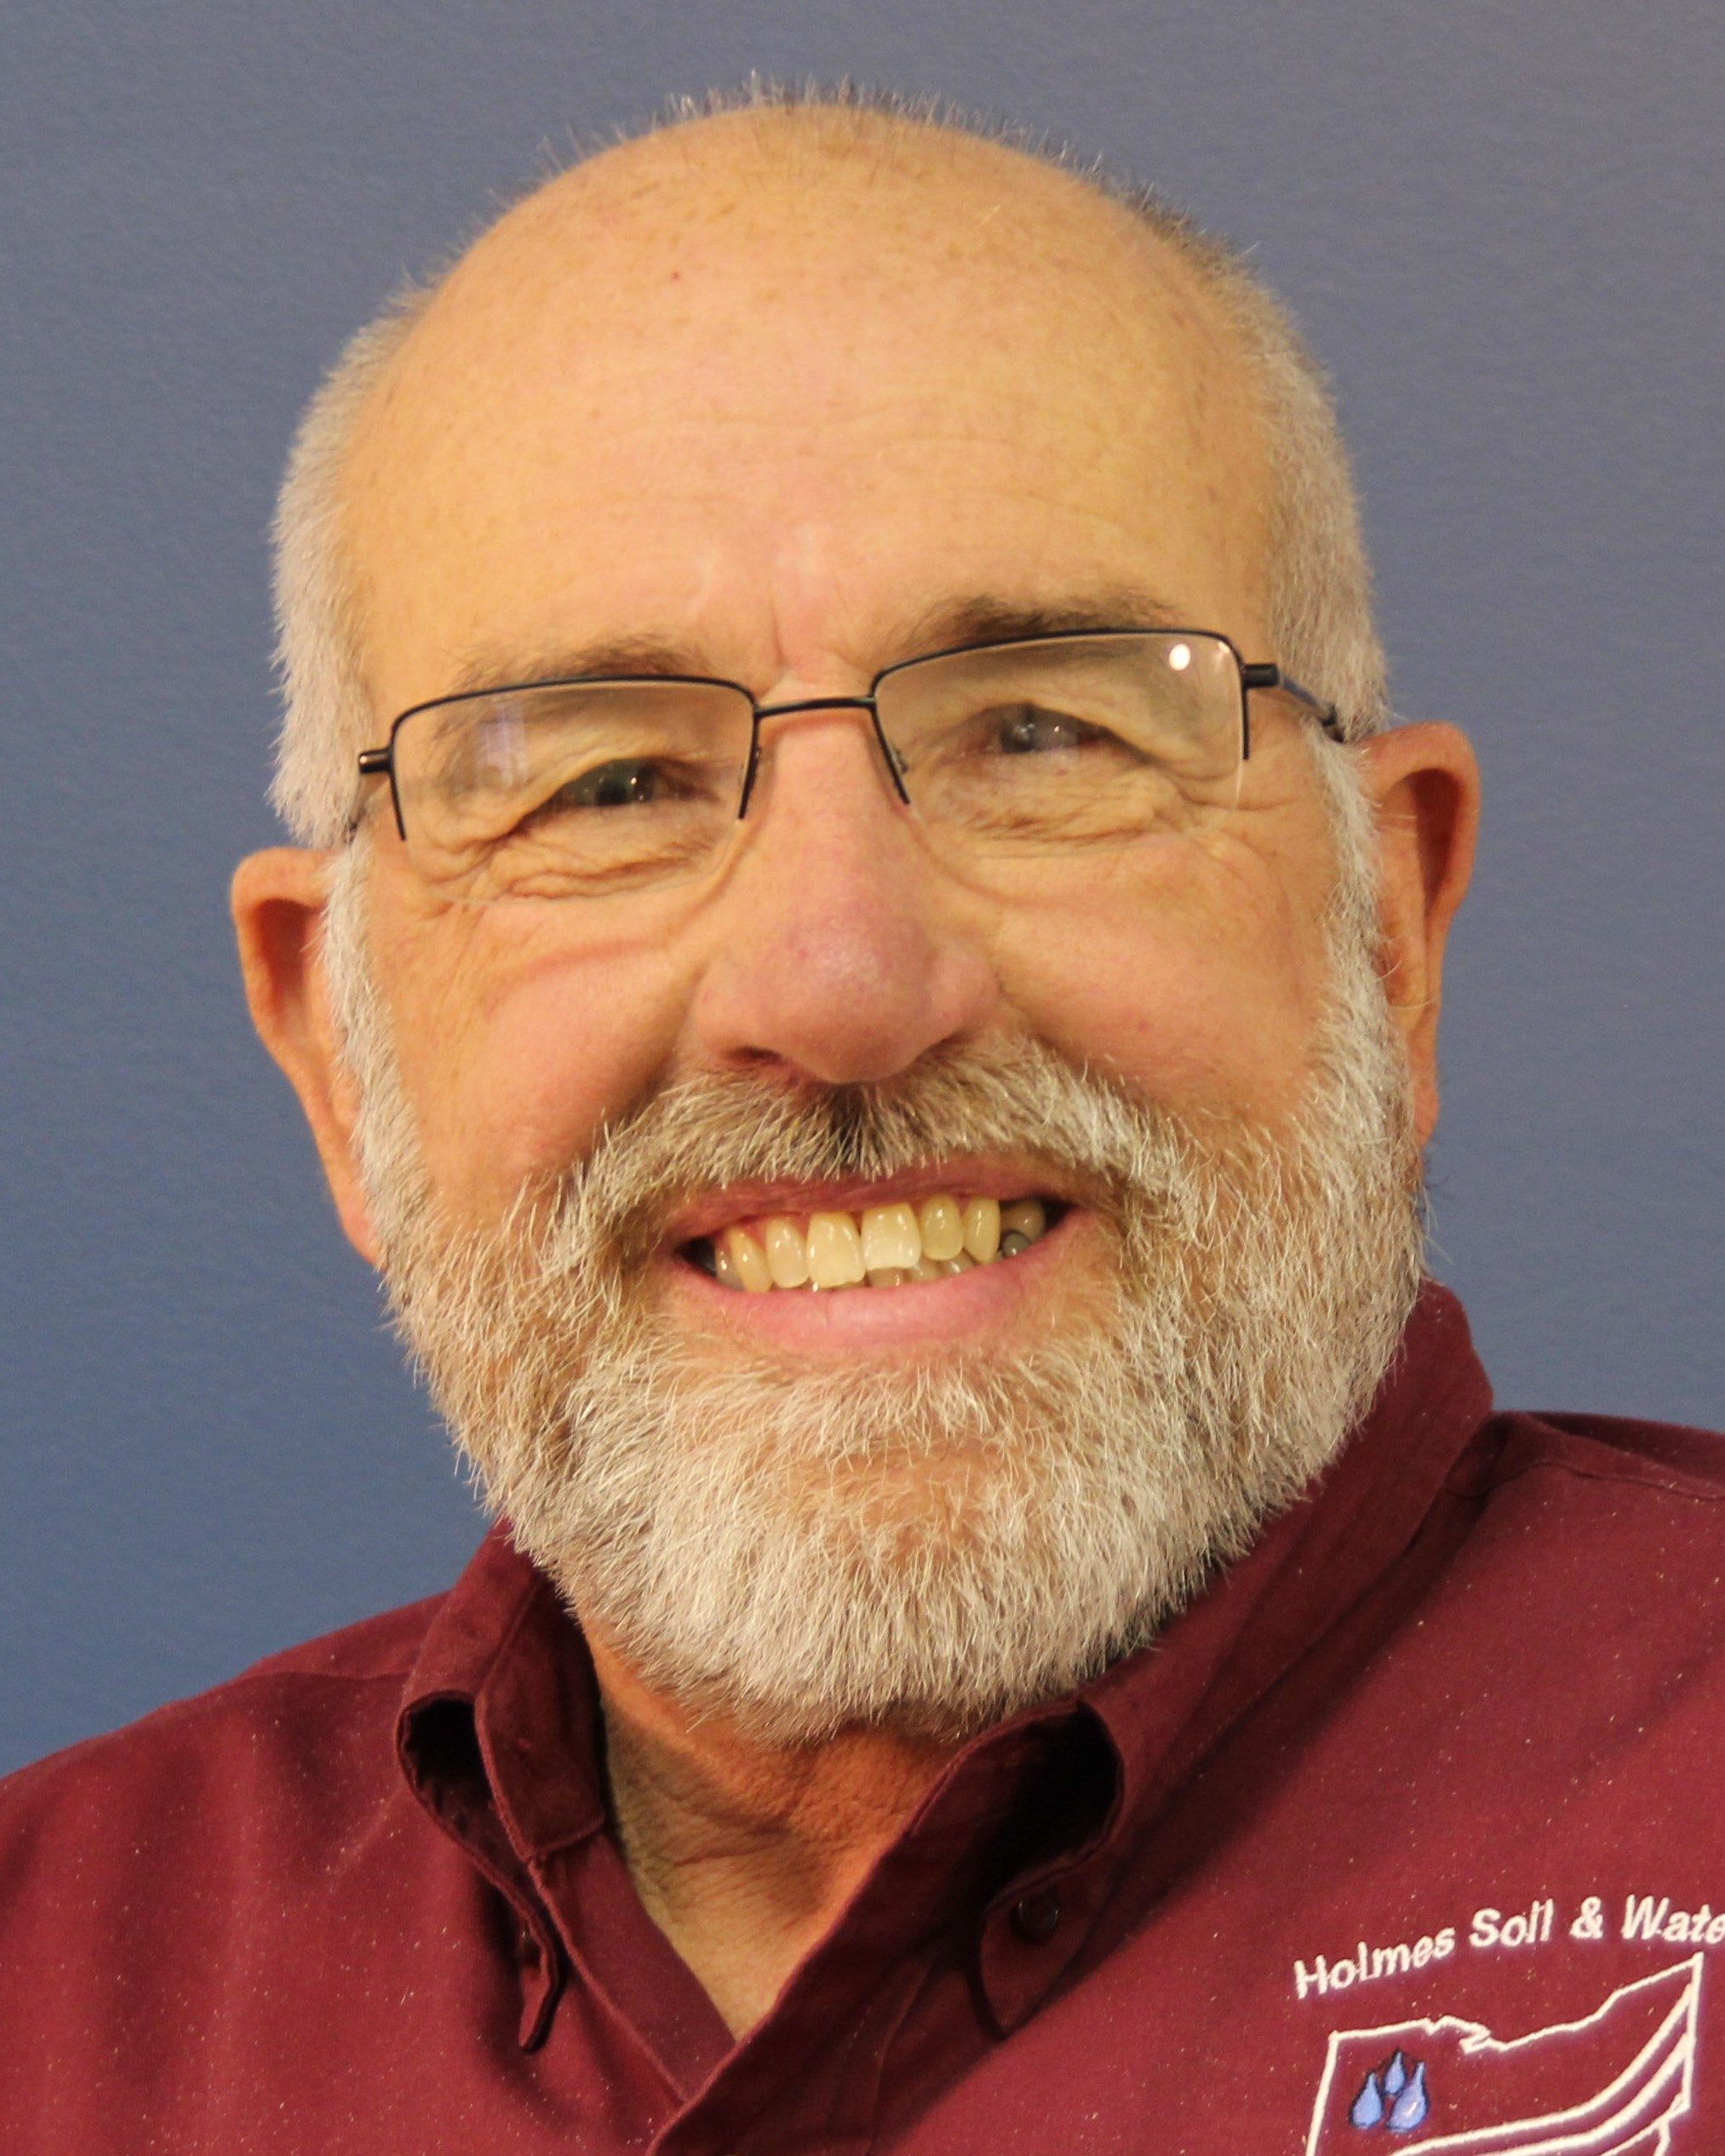 Joe Christner, Water Quality Specialist - Joe Christner came to Holmes SWCD in 2001 with experience and knowledge drawn from 20-plus years of dairy farming. He grew up on a small farm near New Bedford, Ohio. His background interest and involvement in agriculture from the time he was a young man give him an empathy and understanding of the needs and concerns of today's farmers. Joe can assist you with conservation plans for your farming operation, including nutrient management planning and record keeping. Water quality, soil health, and conserving the resources needed for the next generation and beyond is very important to Joe.Contact Joe at 330-674-2811 or jchristner@co.holmes.oh.us